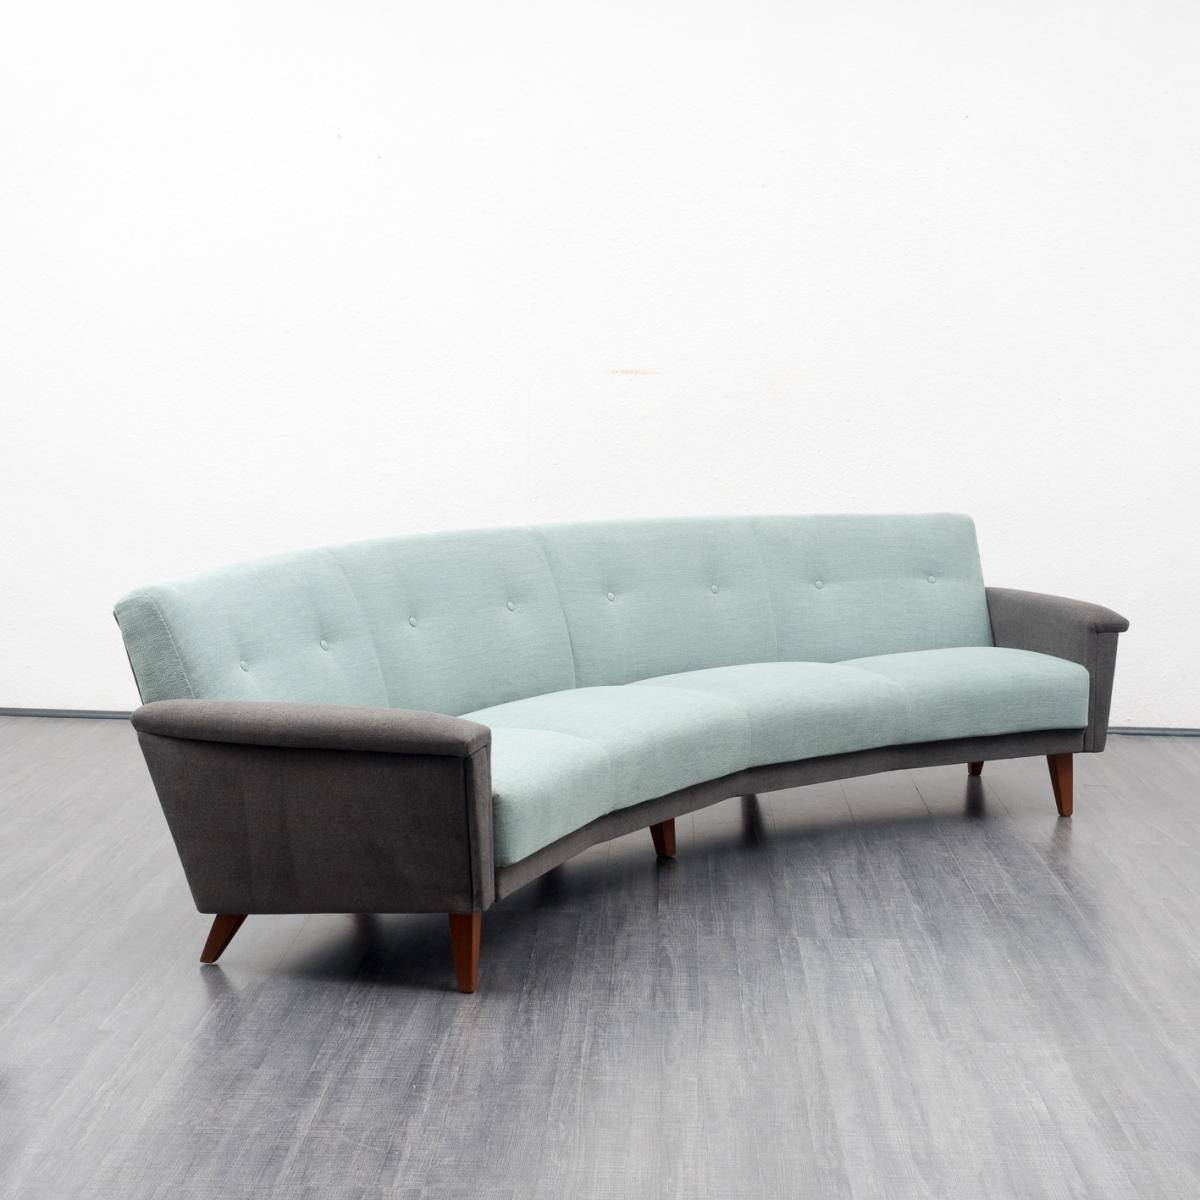 Semi Circular Sofas - Leather Sectional Sofa pertaining to Semicircular Sofa (Image 12 of 30)